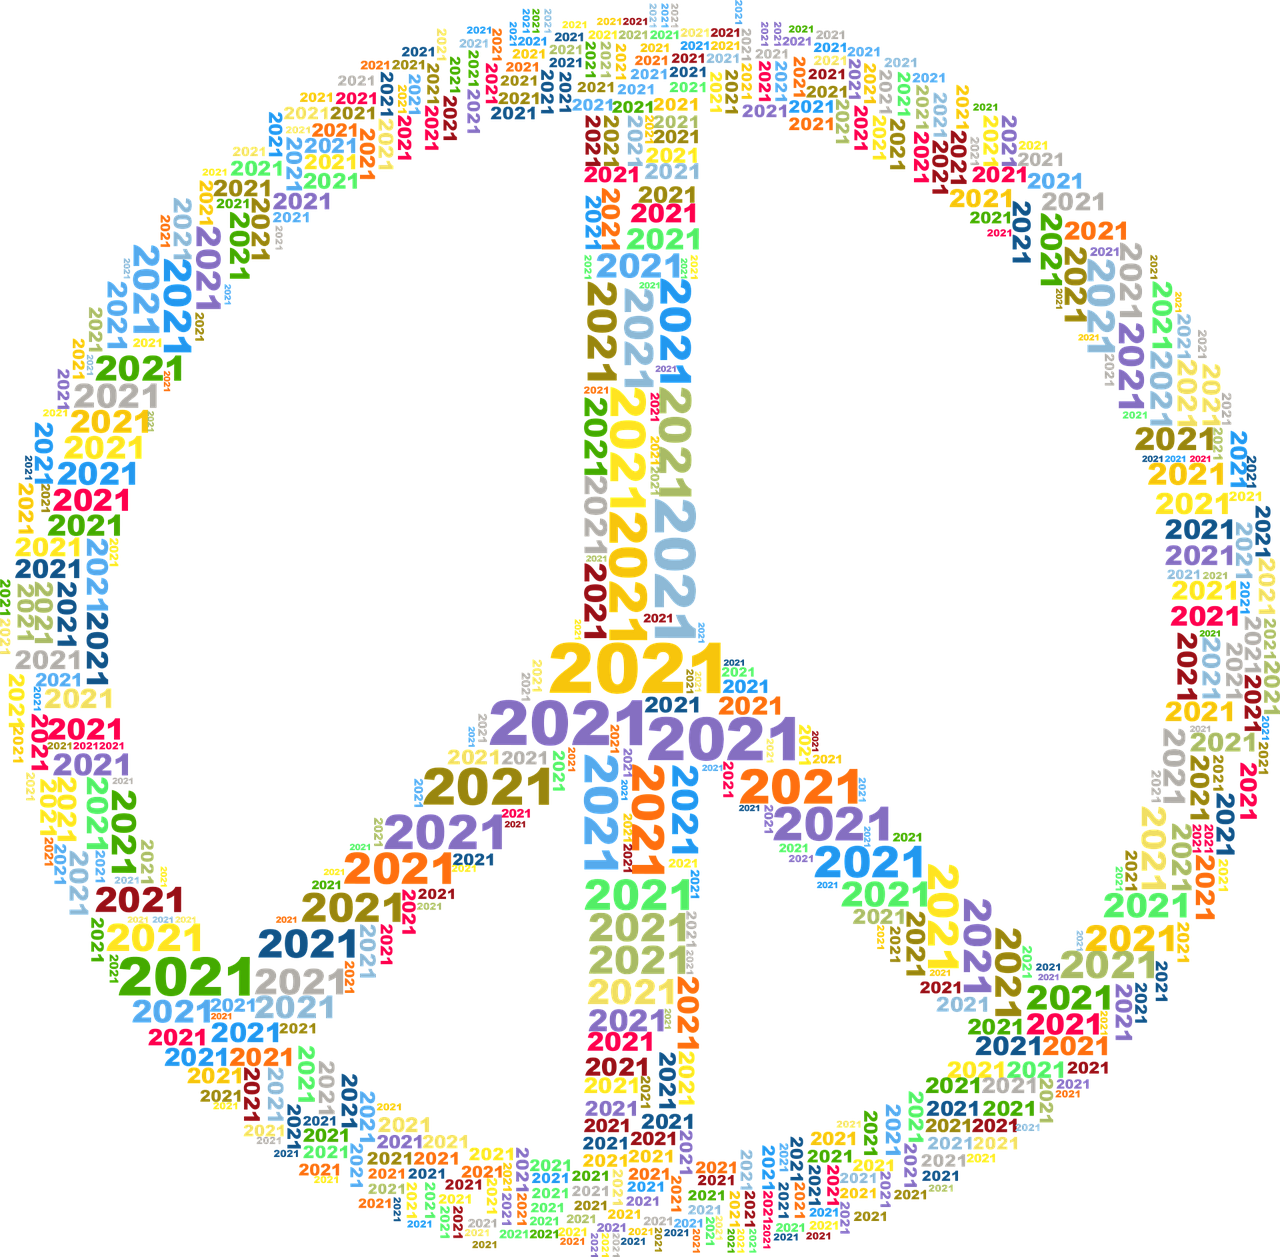 Peace 2021 Sign - Free vector graphic on Pixabay